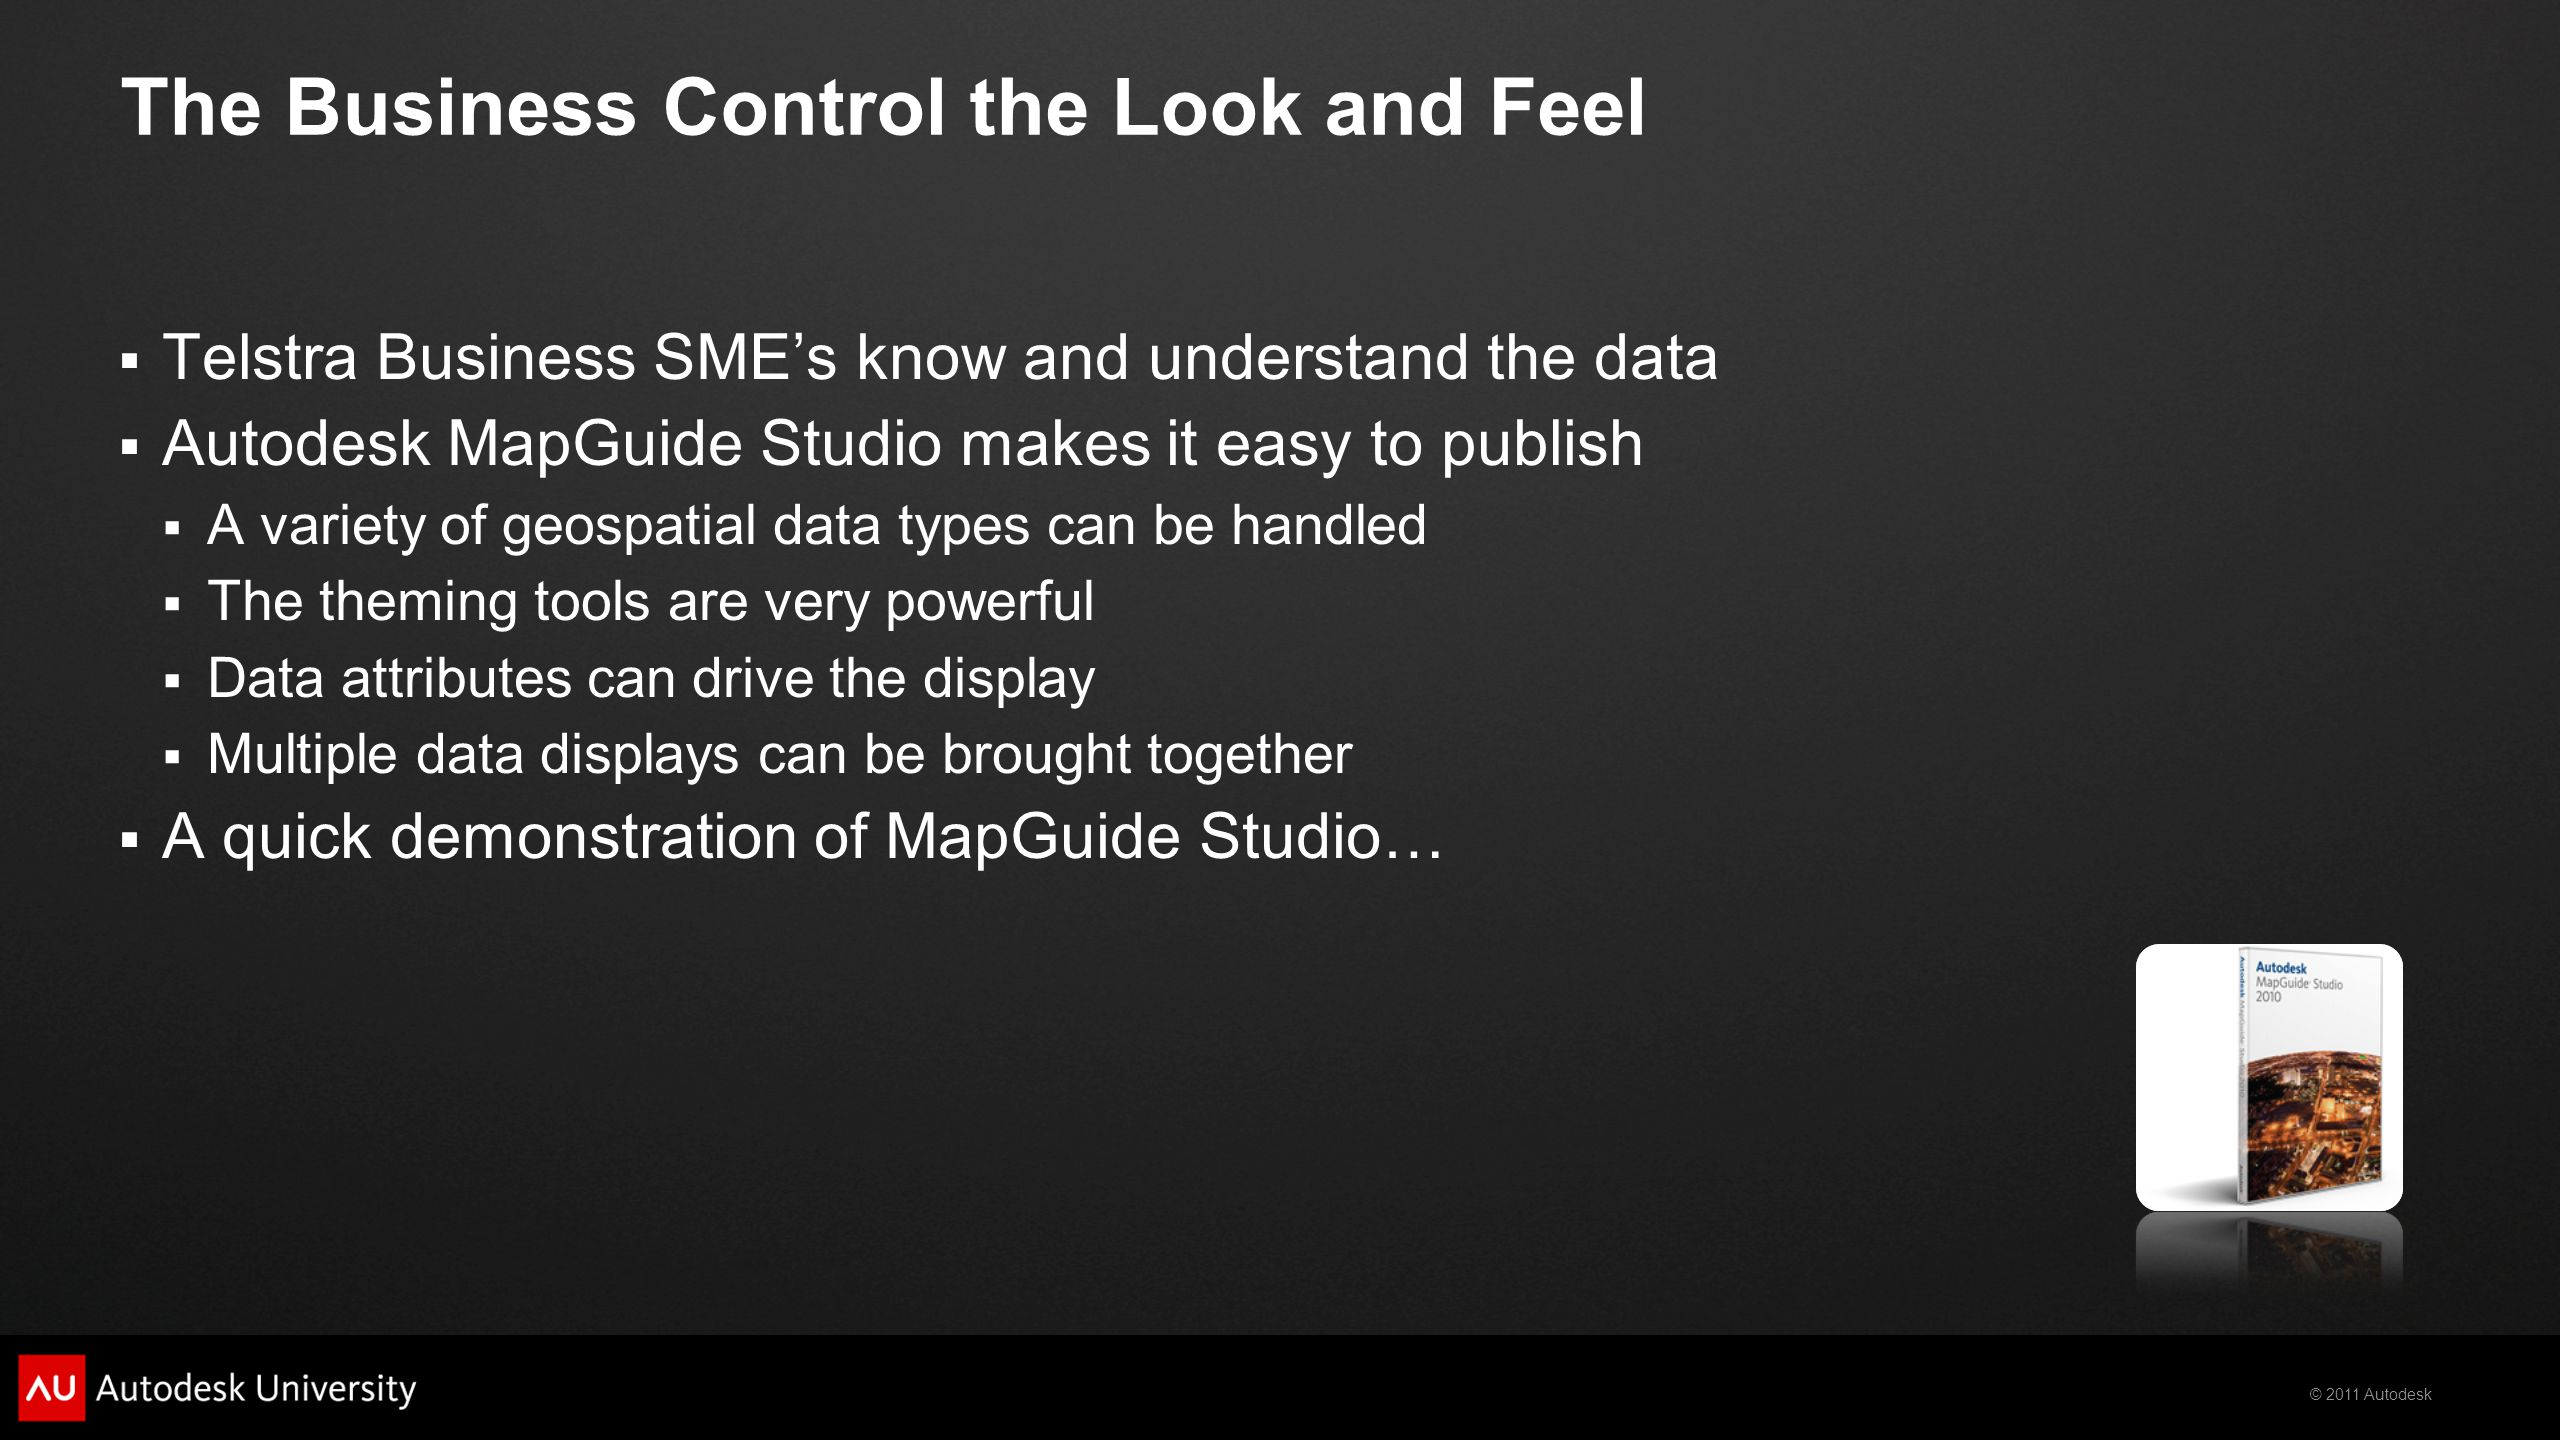 © 2011 Autodesk The Business Control the Look and Feel  Telstra Business SME's know and understand the data  Autodesk MapGuide Studio makes it easy to publish  A variety of geospatial data types can be handled  The theming tools are very powerful  Data attributes can drive the display  Multiple data displays can be brought together  A quick demonstration of MapGuide Studio…